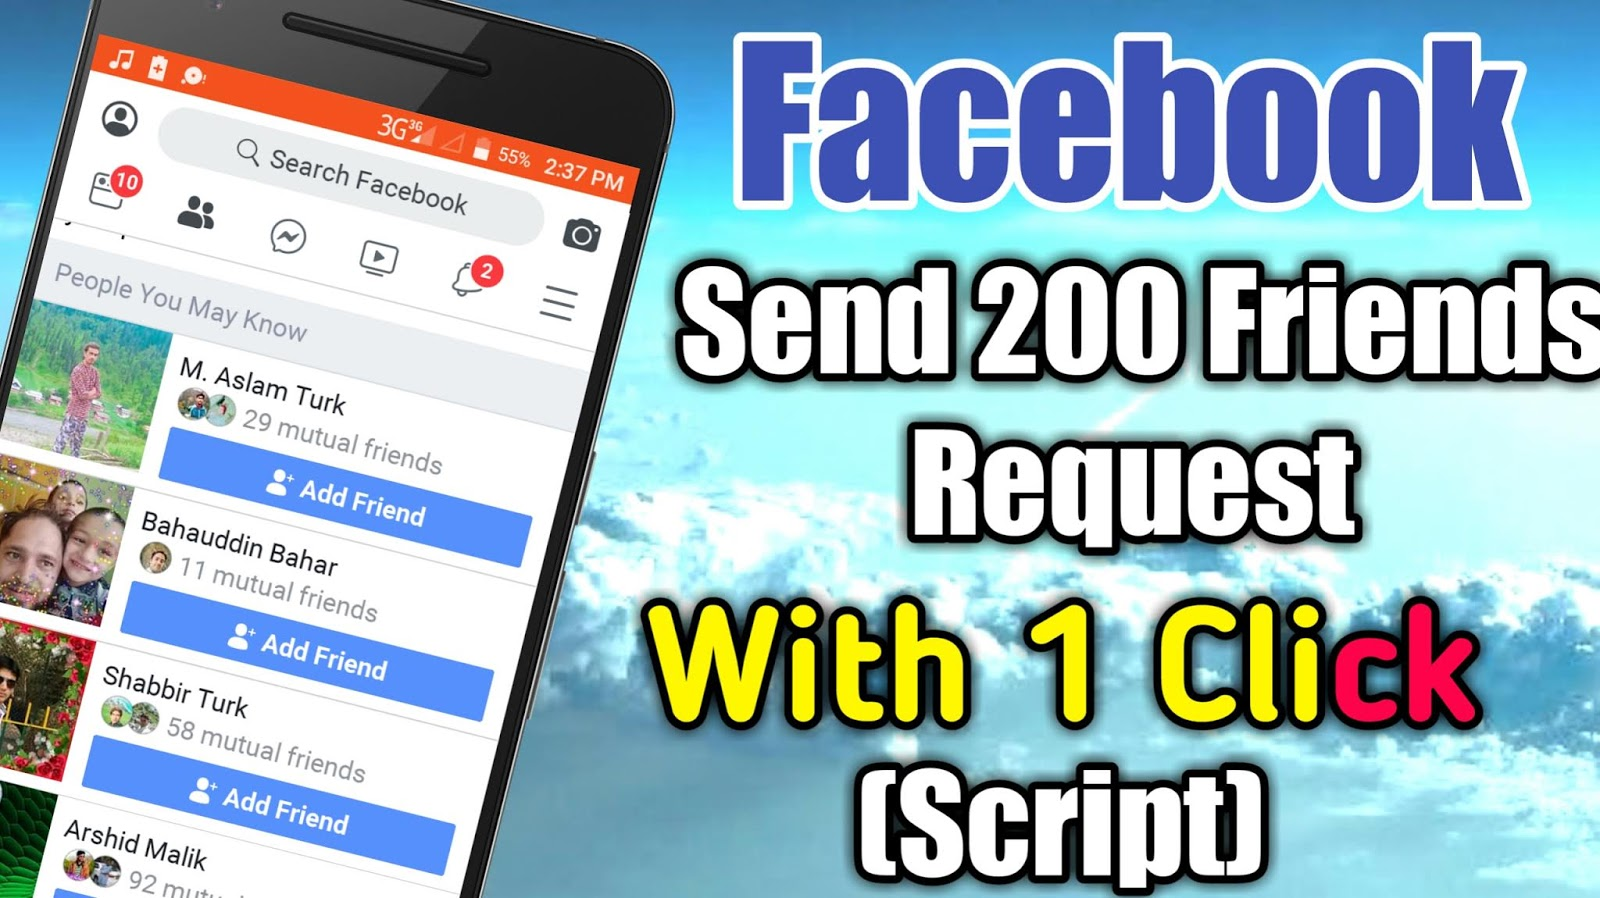 how to Send 200 friend request on facebook|In 1 Click Simple Method in 2019   how to Send 1000 friend request on facebook|In 1 Click Simple Method in 2019   Introduction  HI friends. Today I will be show you how you can send 200 Friends request on Facebook in one click using this Script.   This is a JavaScript. For Using this Script you can complete your 5000 Facebook friends in one day.   this script is very useful for you if you want to use this follow the method.     How it Work. First you need a chrome are any other browser. Open your browser and search Facebook login into Facebook and click the link given by the click here text. Next download or copy Sicript from Google drive folder link given the click here image click on image and Copy Sicript and the practical process is here. If you don't understand watch on youtube link is here.  Click here to Watch Video      Practically Wortk Open Your Browser  Login in to facebook  Then Click here  You will redirect to this page.     Then Copy or download Sicript in here.     Then paste script in web page    Then Select How many friends Request you send. and how many friends request send in one minute.  After this friends request automatic sending start.    Warning This Script is very powerful use it on your own risk. If you use this Script Facebook temporarily ban your friends request send option. You can not send friend request on Facebook for 1 hours or more. this script does not affect your Facebook main account. It is affecting your friends request sending options for 1 hours or 1 days. So if you want to use this Script it is so easy to use. Good luck.